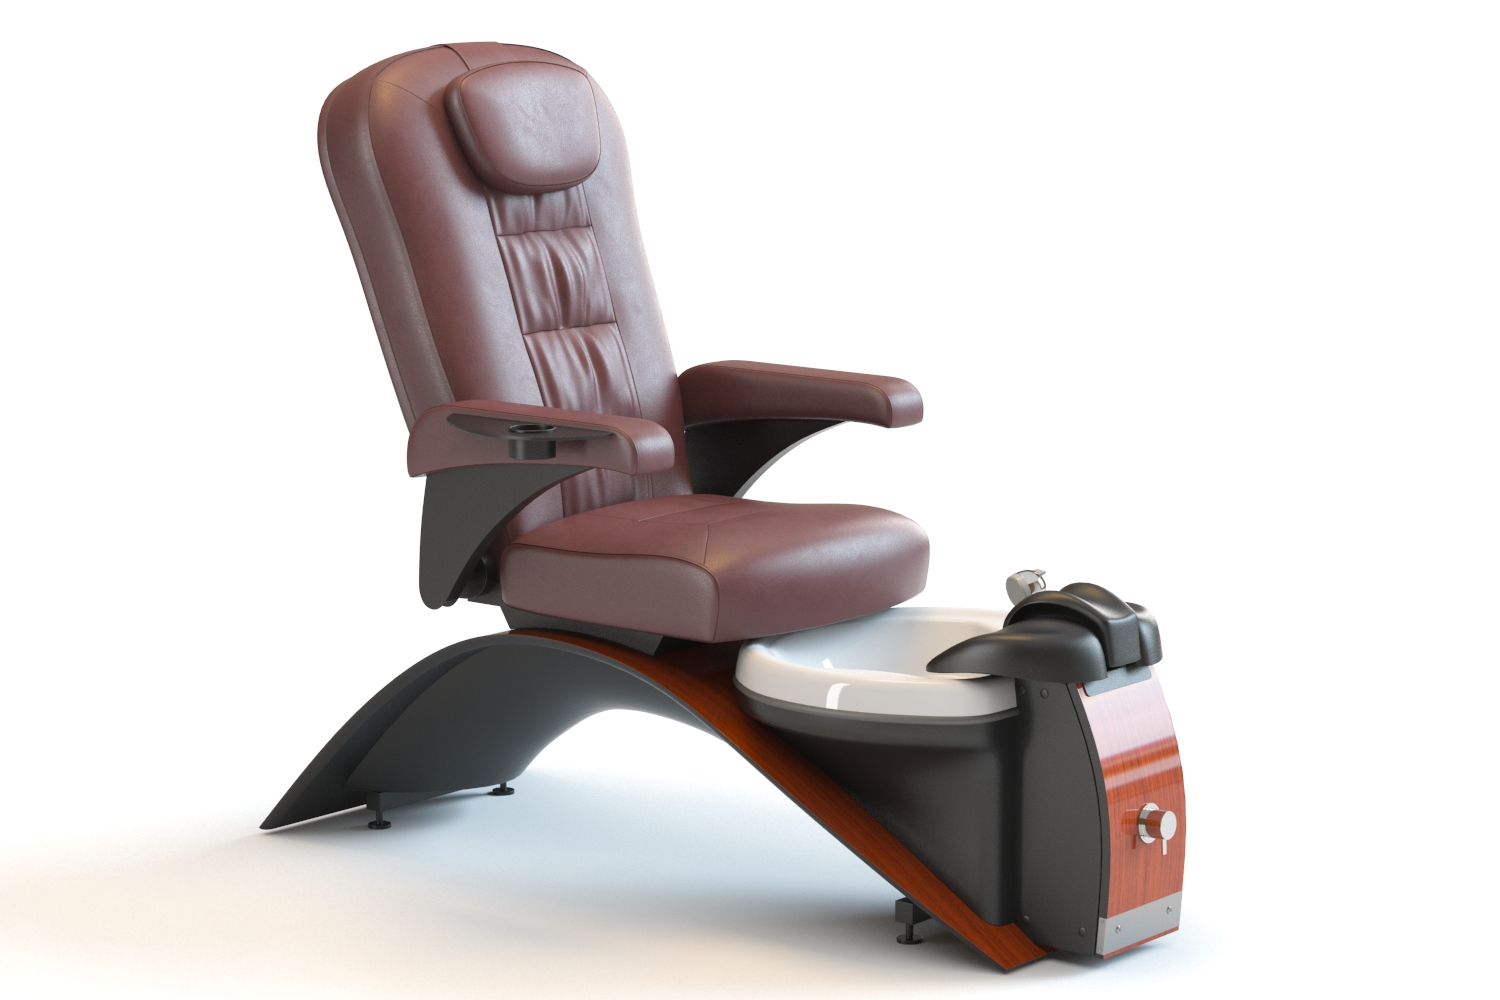 3d model spa chair